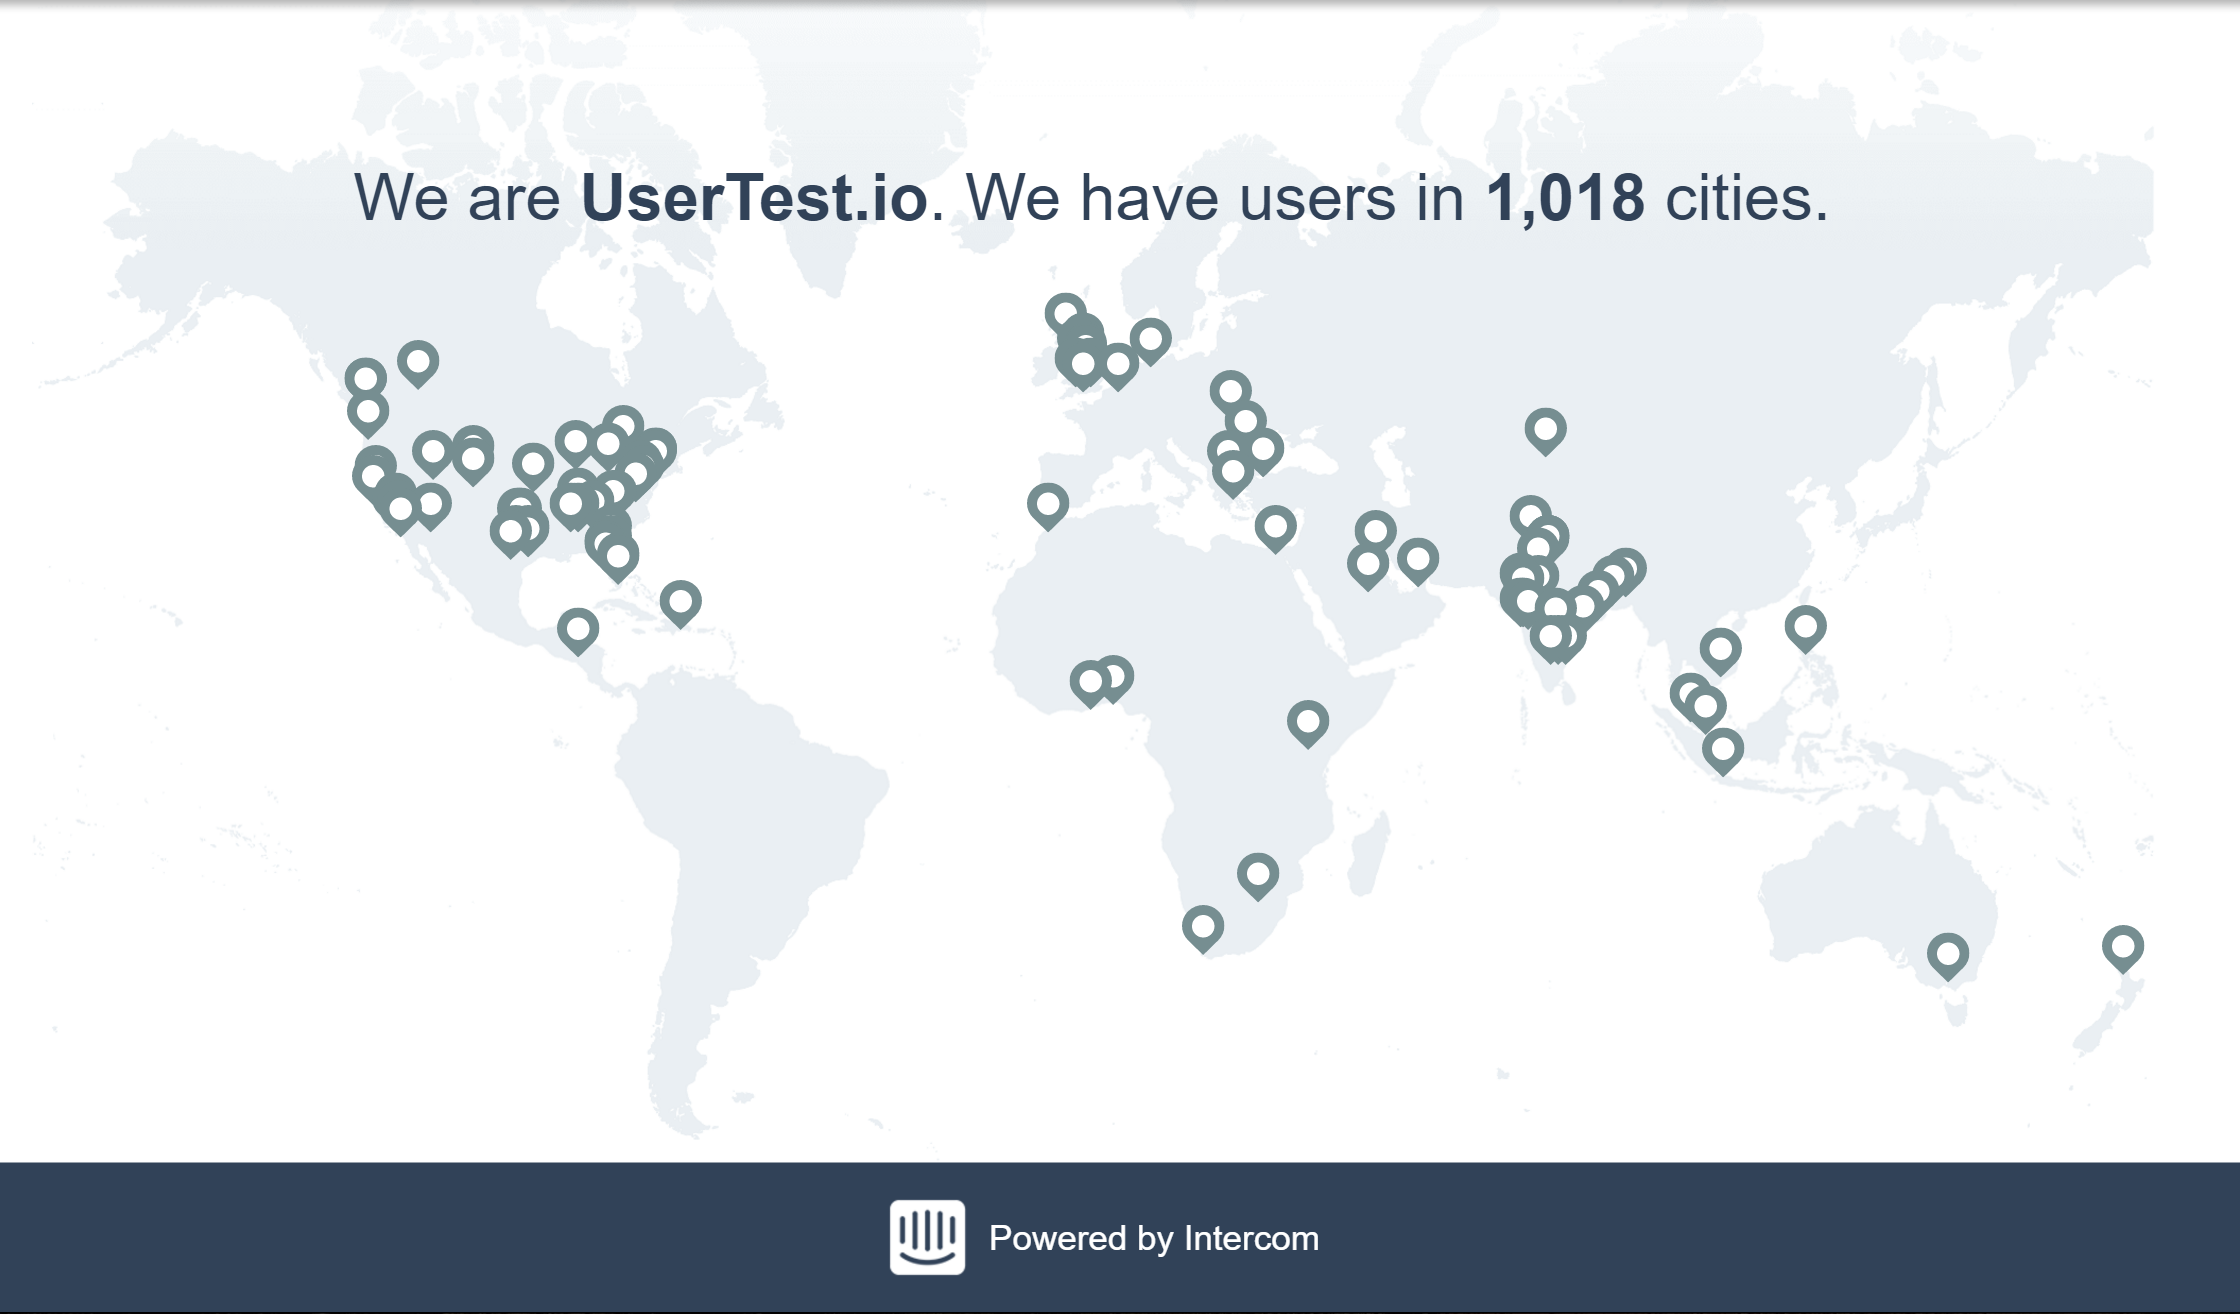 UserTest.io Demo - Our Users